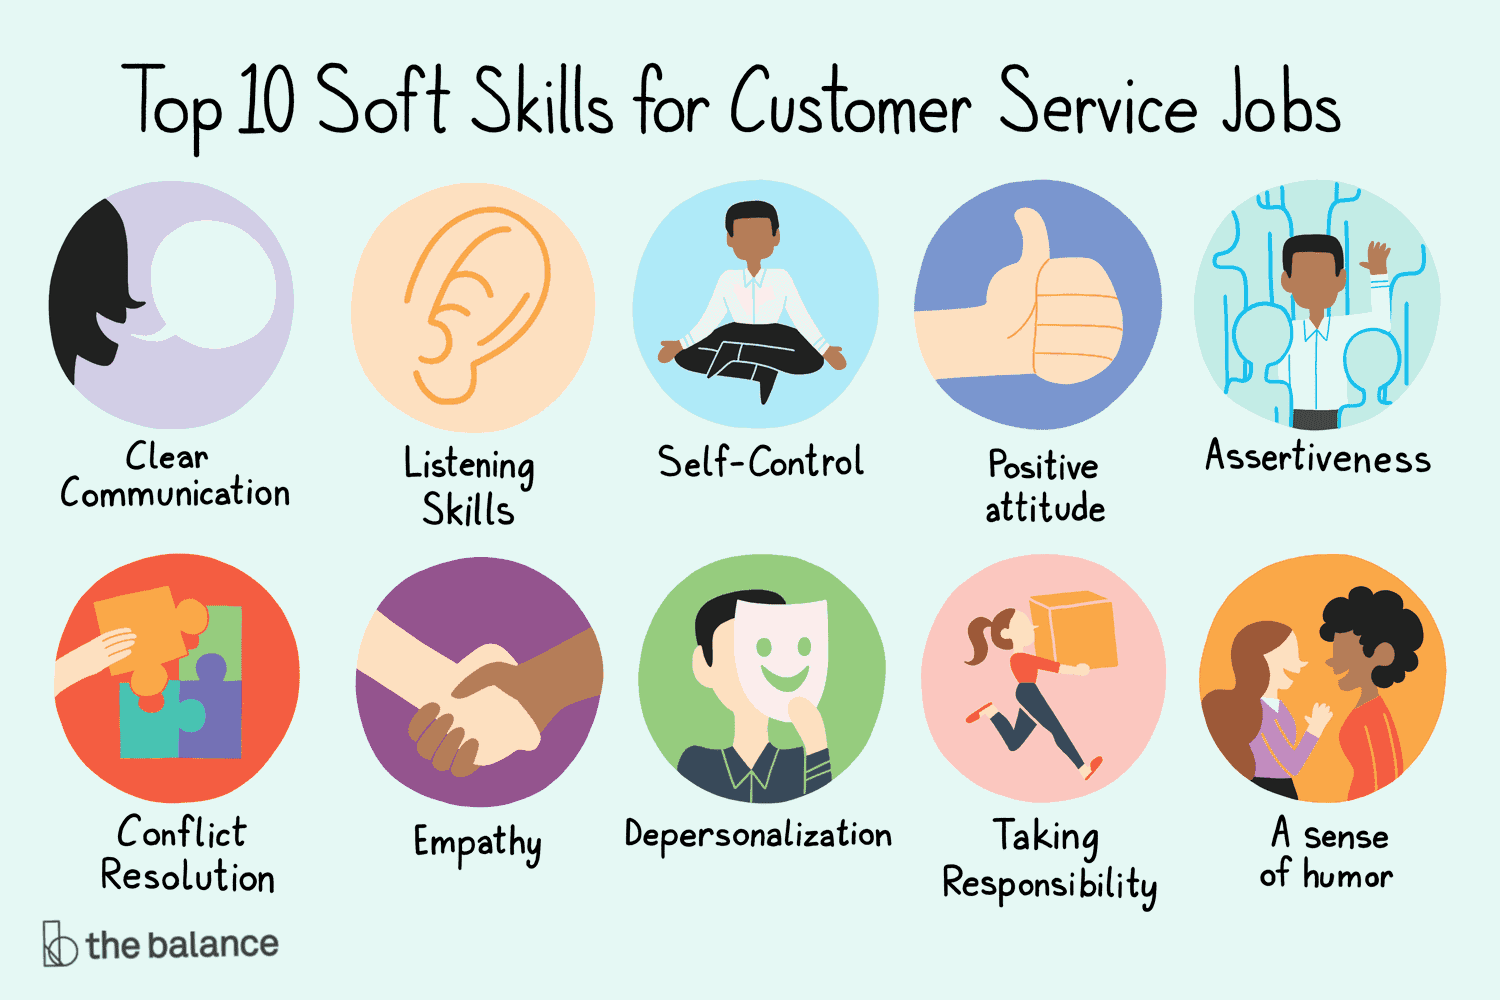 customer service, skills, jobs